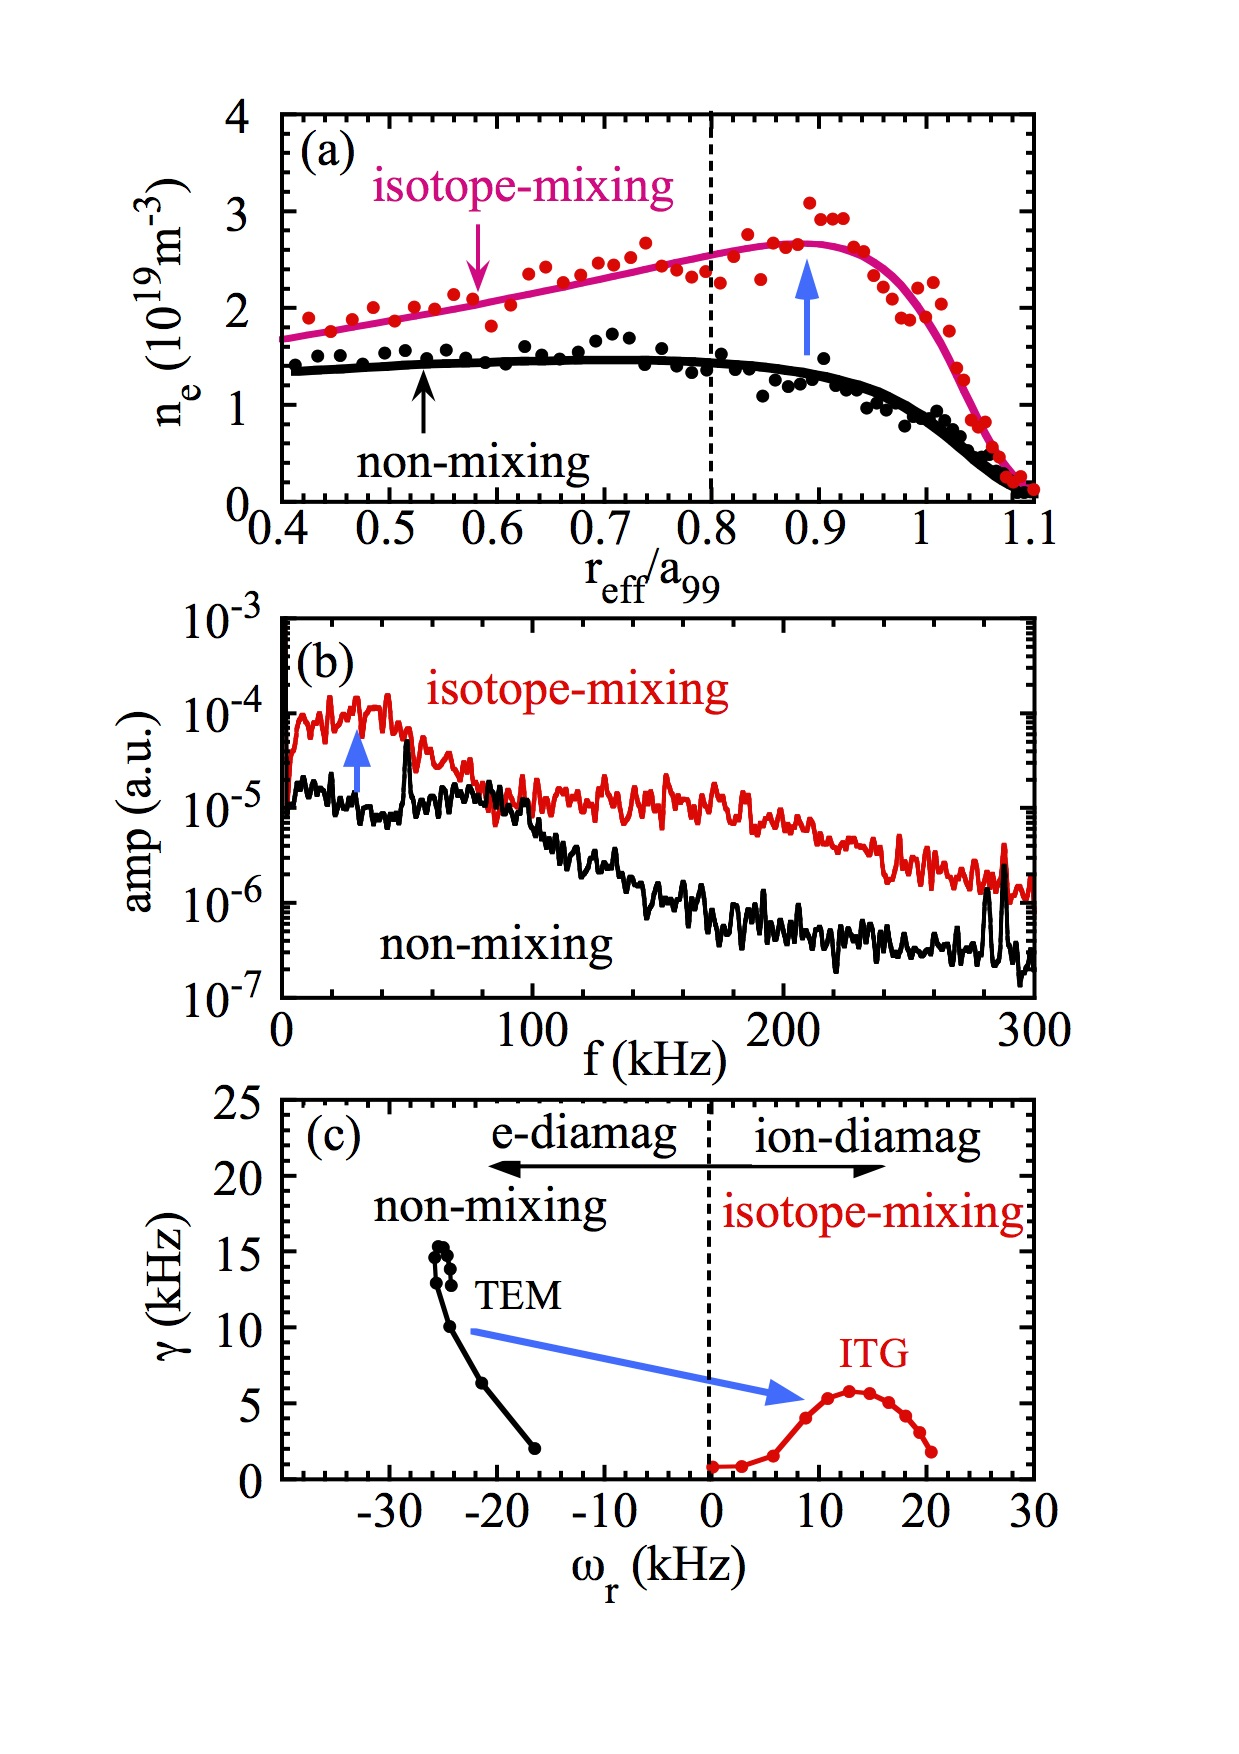 Radial profiles of (a) electron density and (b) density fluctuation spectrum before pellet injection (non-mixing state) and after pellet injection (isotope mixing state) and (c) the linear growth rate at $r_{\rm eff}/a_{99}$ = 0.8 for the non-mixing and isotope-mixing sates calculated with GKV.